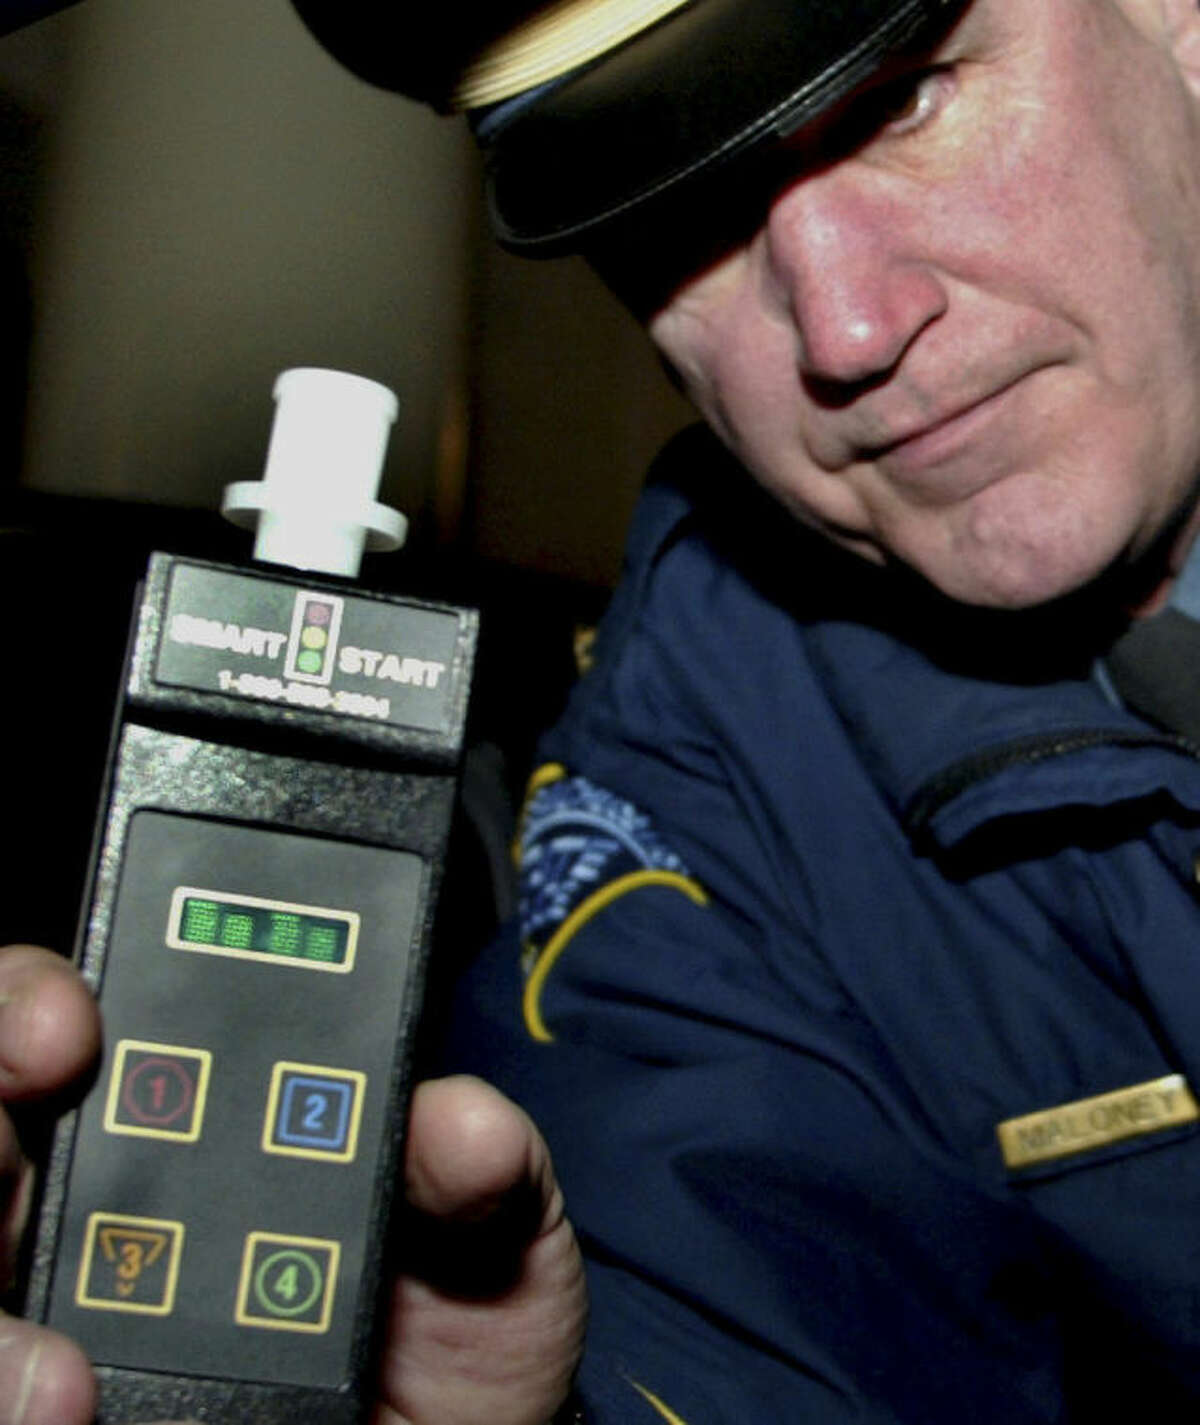 FILE - In this Jan. 3, 2006 file photo, Massachusetts State Police Lt. Paul Maloney holds an ignition interlock device outside Boston's State House. In Massachusetts, repeat drunk drivers are required to have them installed on their vehicles upon issuance of a hardship license or at full license reinstatement. In Connecticut, a measure passed unanimously by the state?'s General Assembly in spring 2014 requires first-time offenders charged with drunken driving to install similar blood-alcohol testers in their vehicles, even if they?'ve never been convicted. The bill is awaiting the signature of Connecticut Gov. Dannel P. Malloy, who has not yet received the legislation. (AP Photo/Bizuayehu Tesfaye, File)